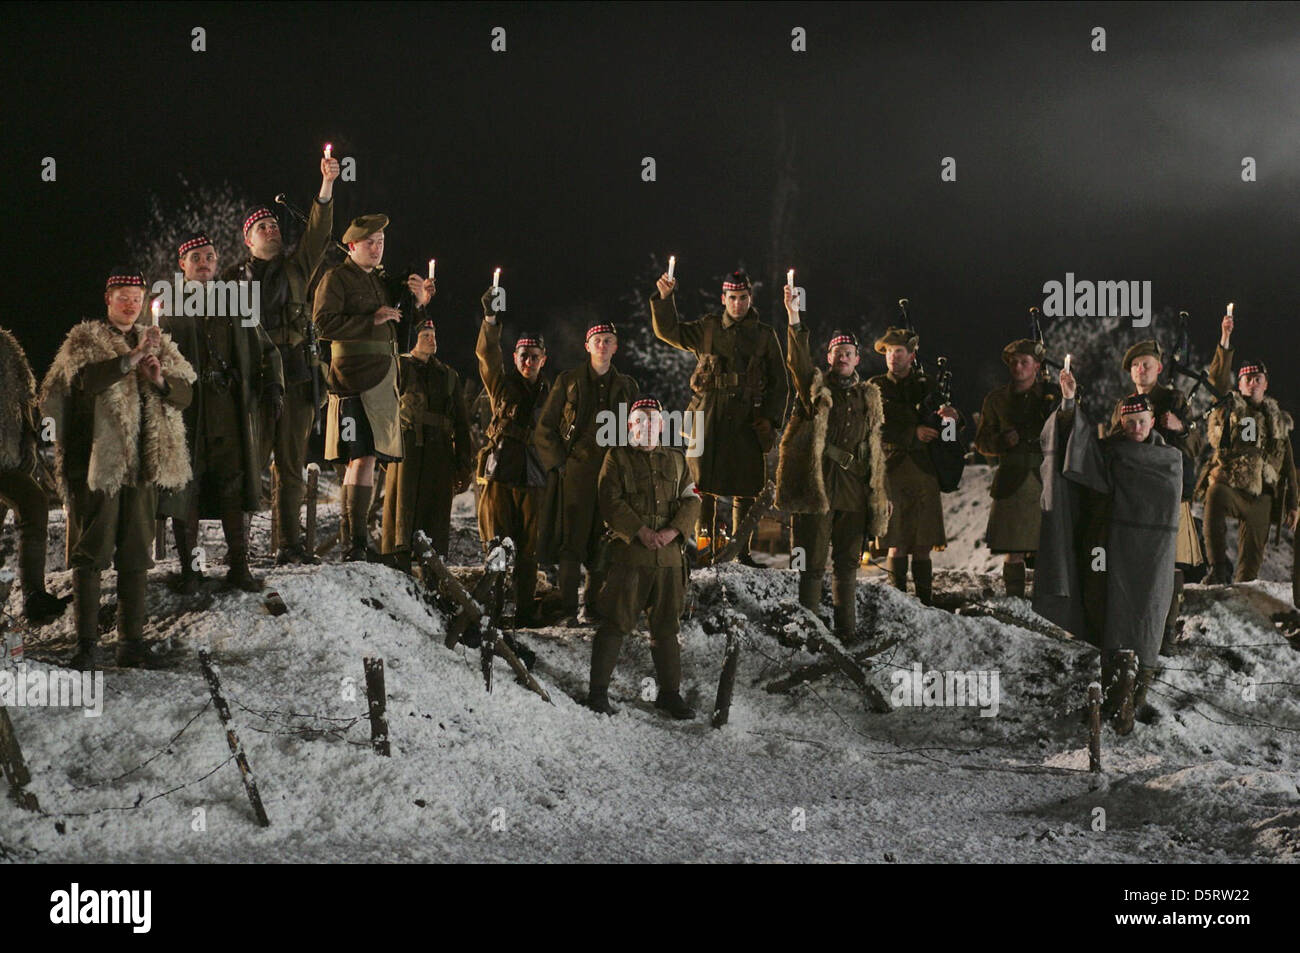 MOVIE SCENE MERRY CHRISTMAS; JOYEUX NOEL (2005 Stock Photo: 55228938 ...